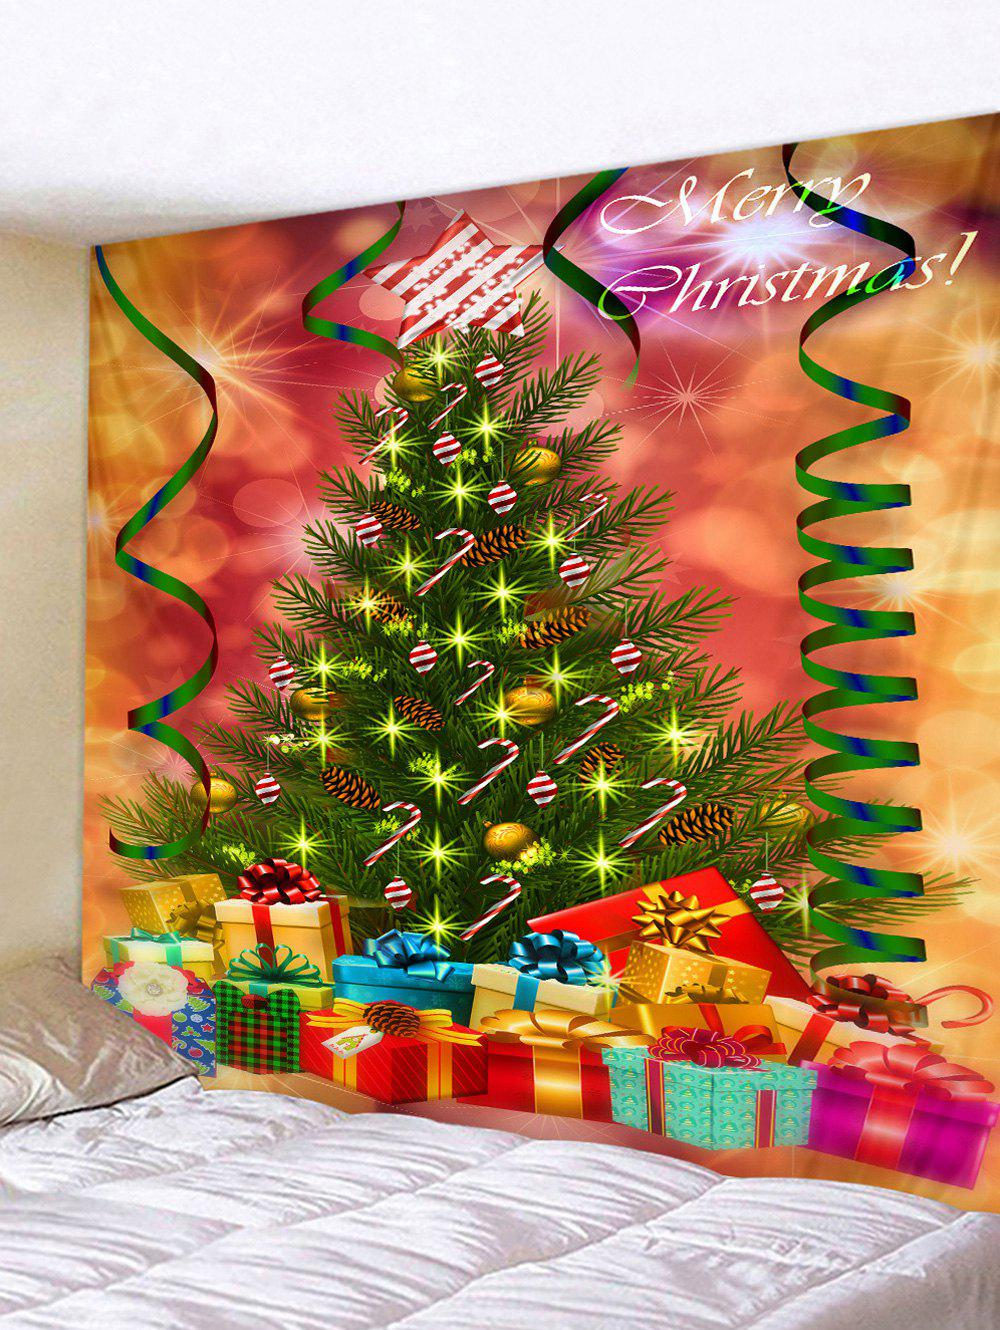 Online Christmas Tree and Gifts Printed Tapestry Wall Hanging Art Decoration